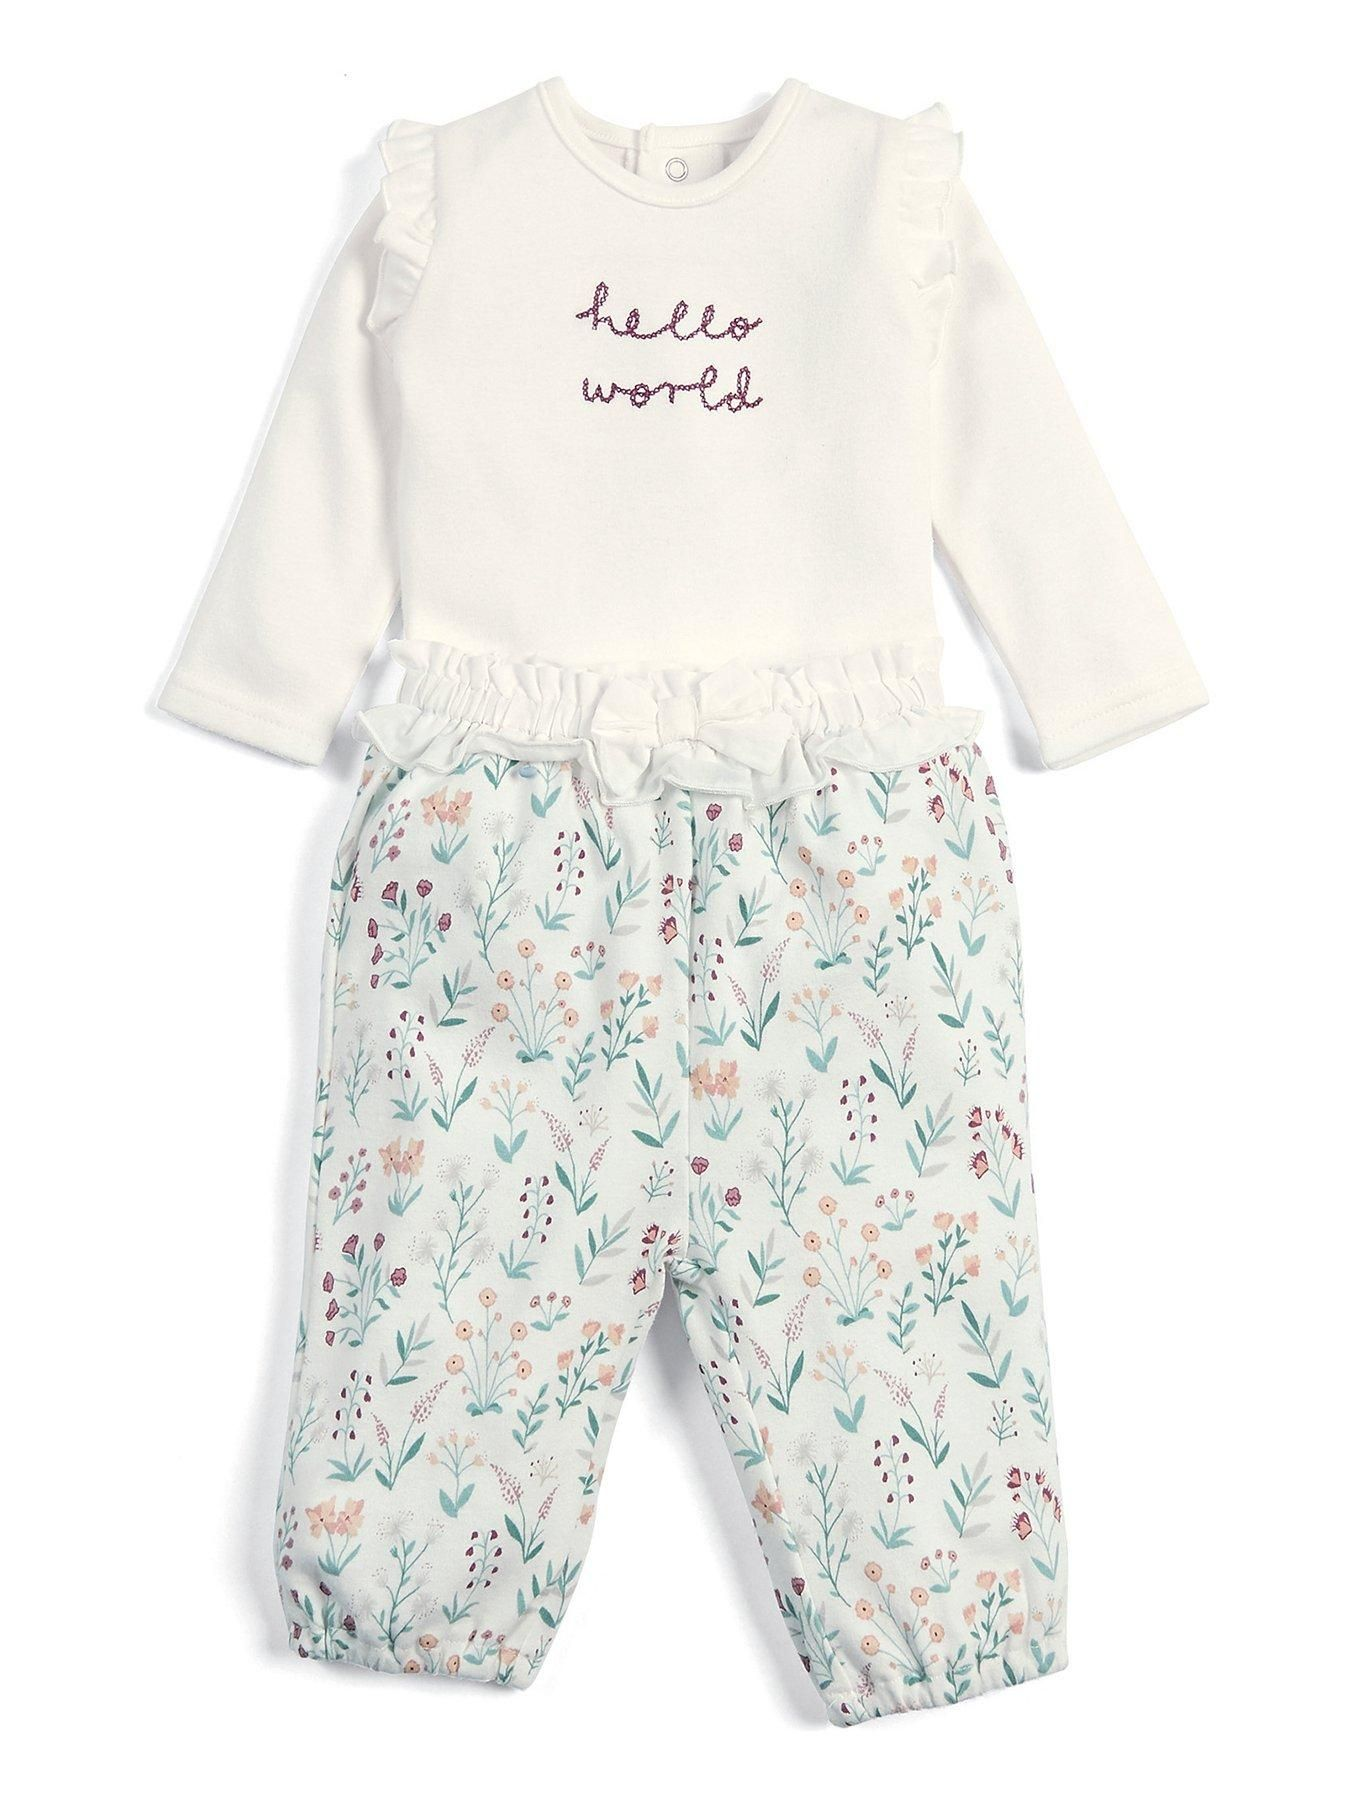 Mamas /& Papas Baby Girls Textured All-in-one with Bib Romper